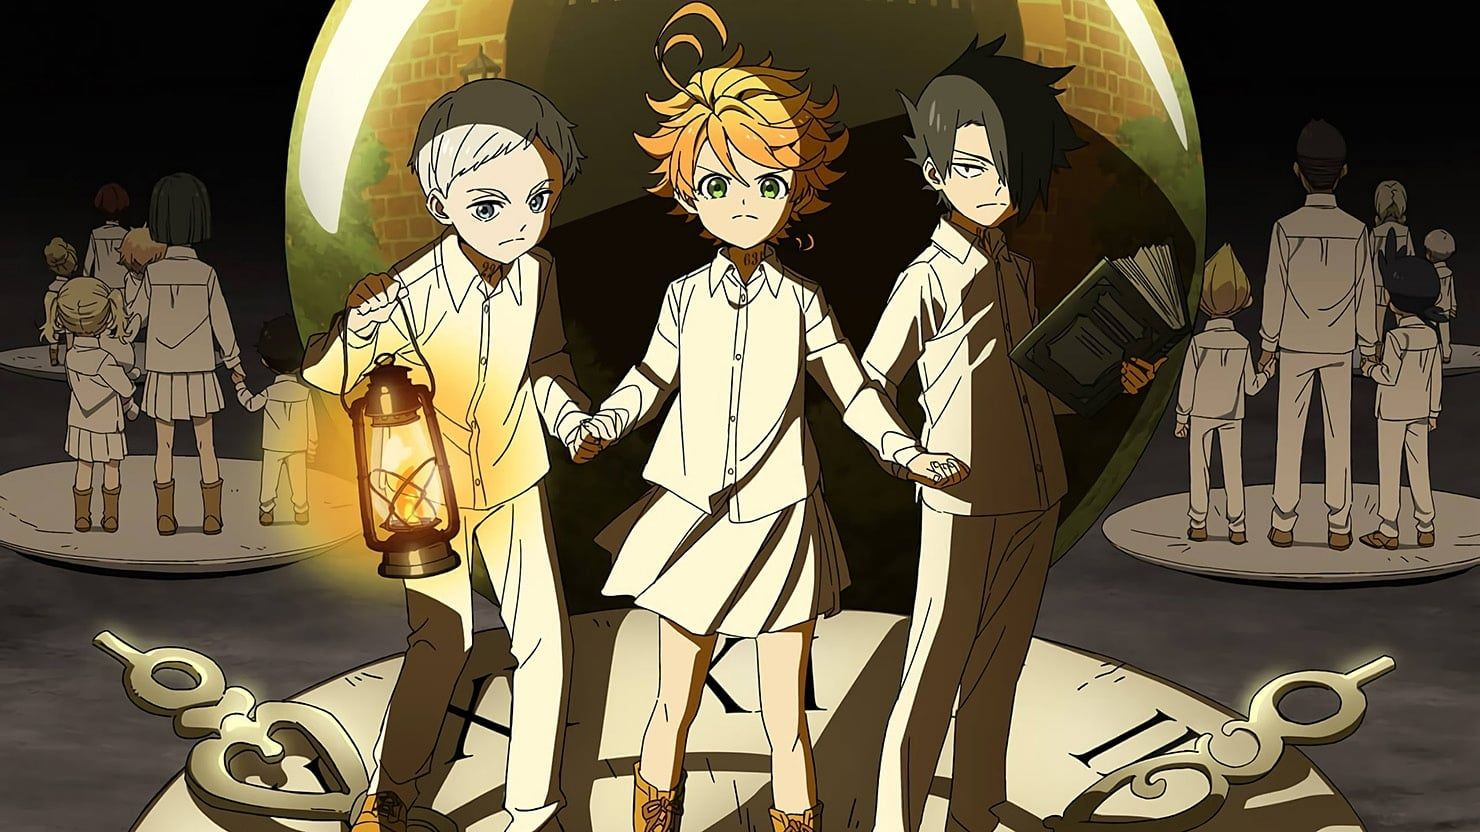 The Promised Neverland download free wallpaper image search